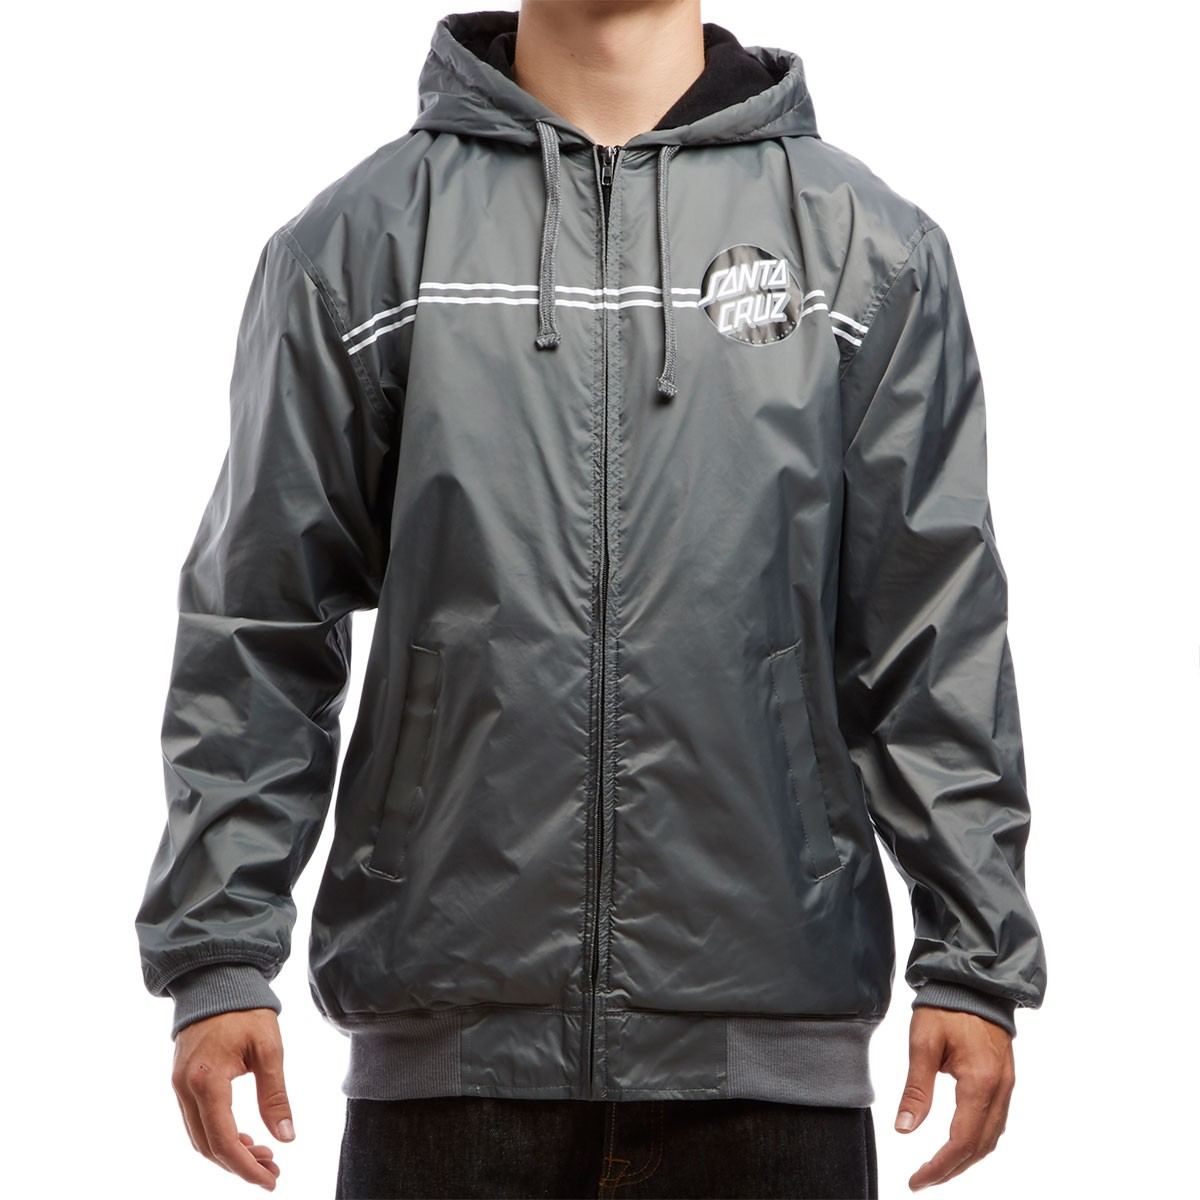 Santa Cruz Dot Hooded Windbreaker Jacket - Charcoal